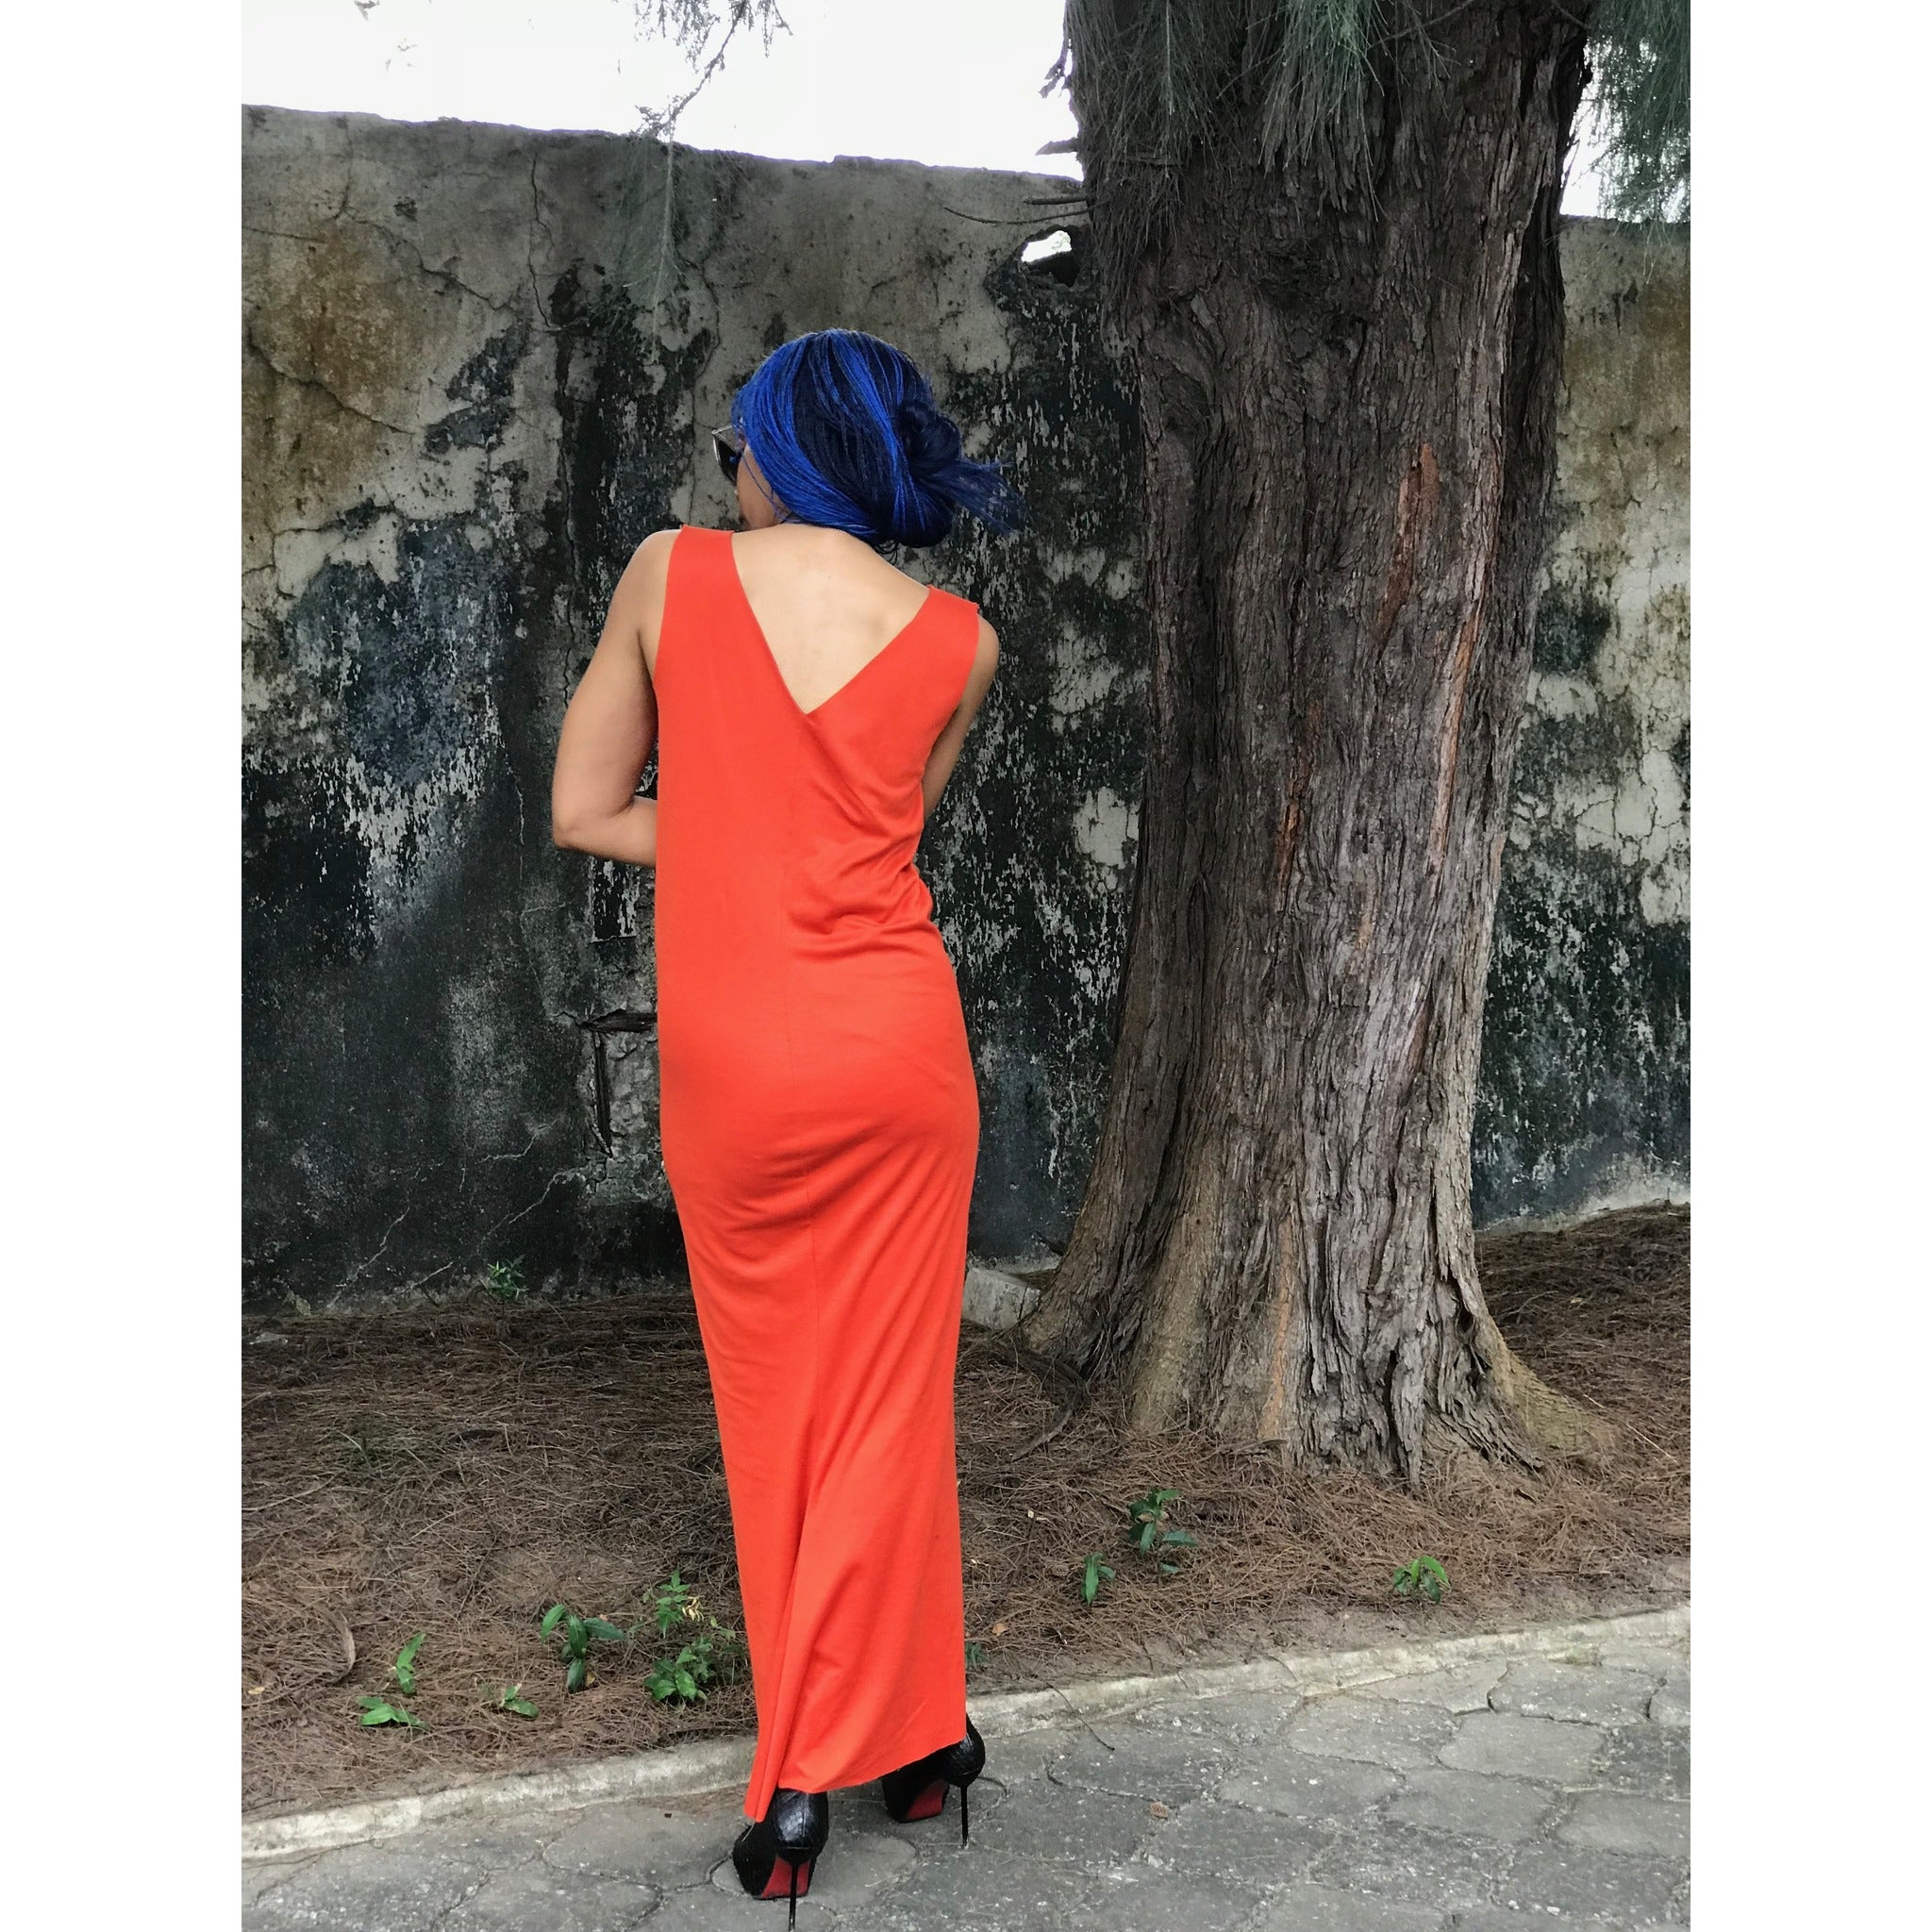 J'ADORE +234 SLEEVELESS MAXI DRESS